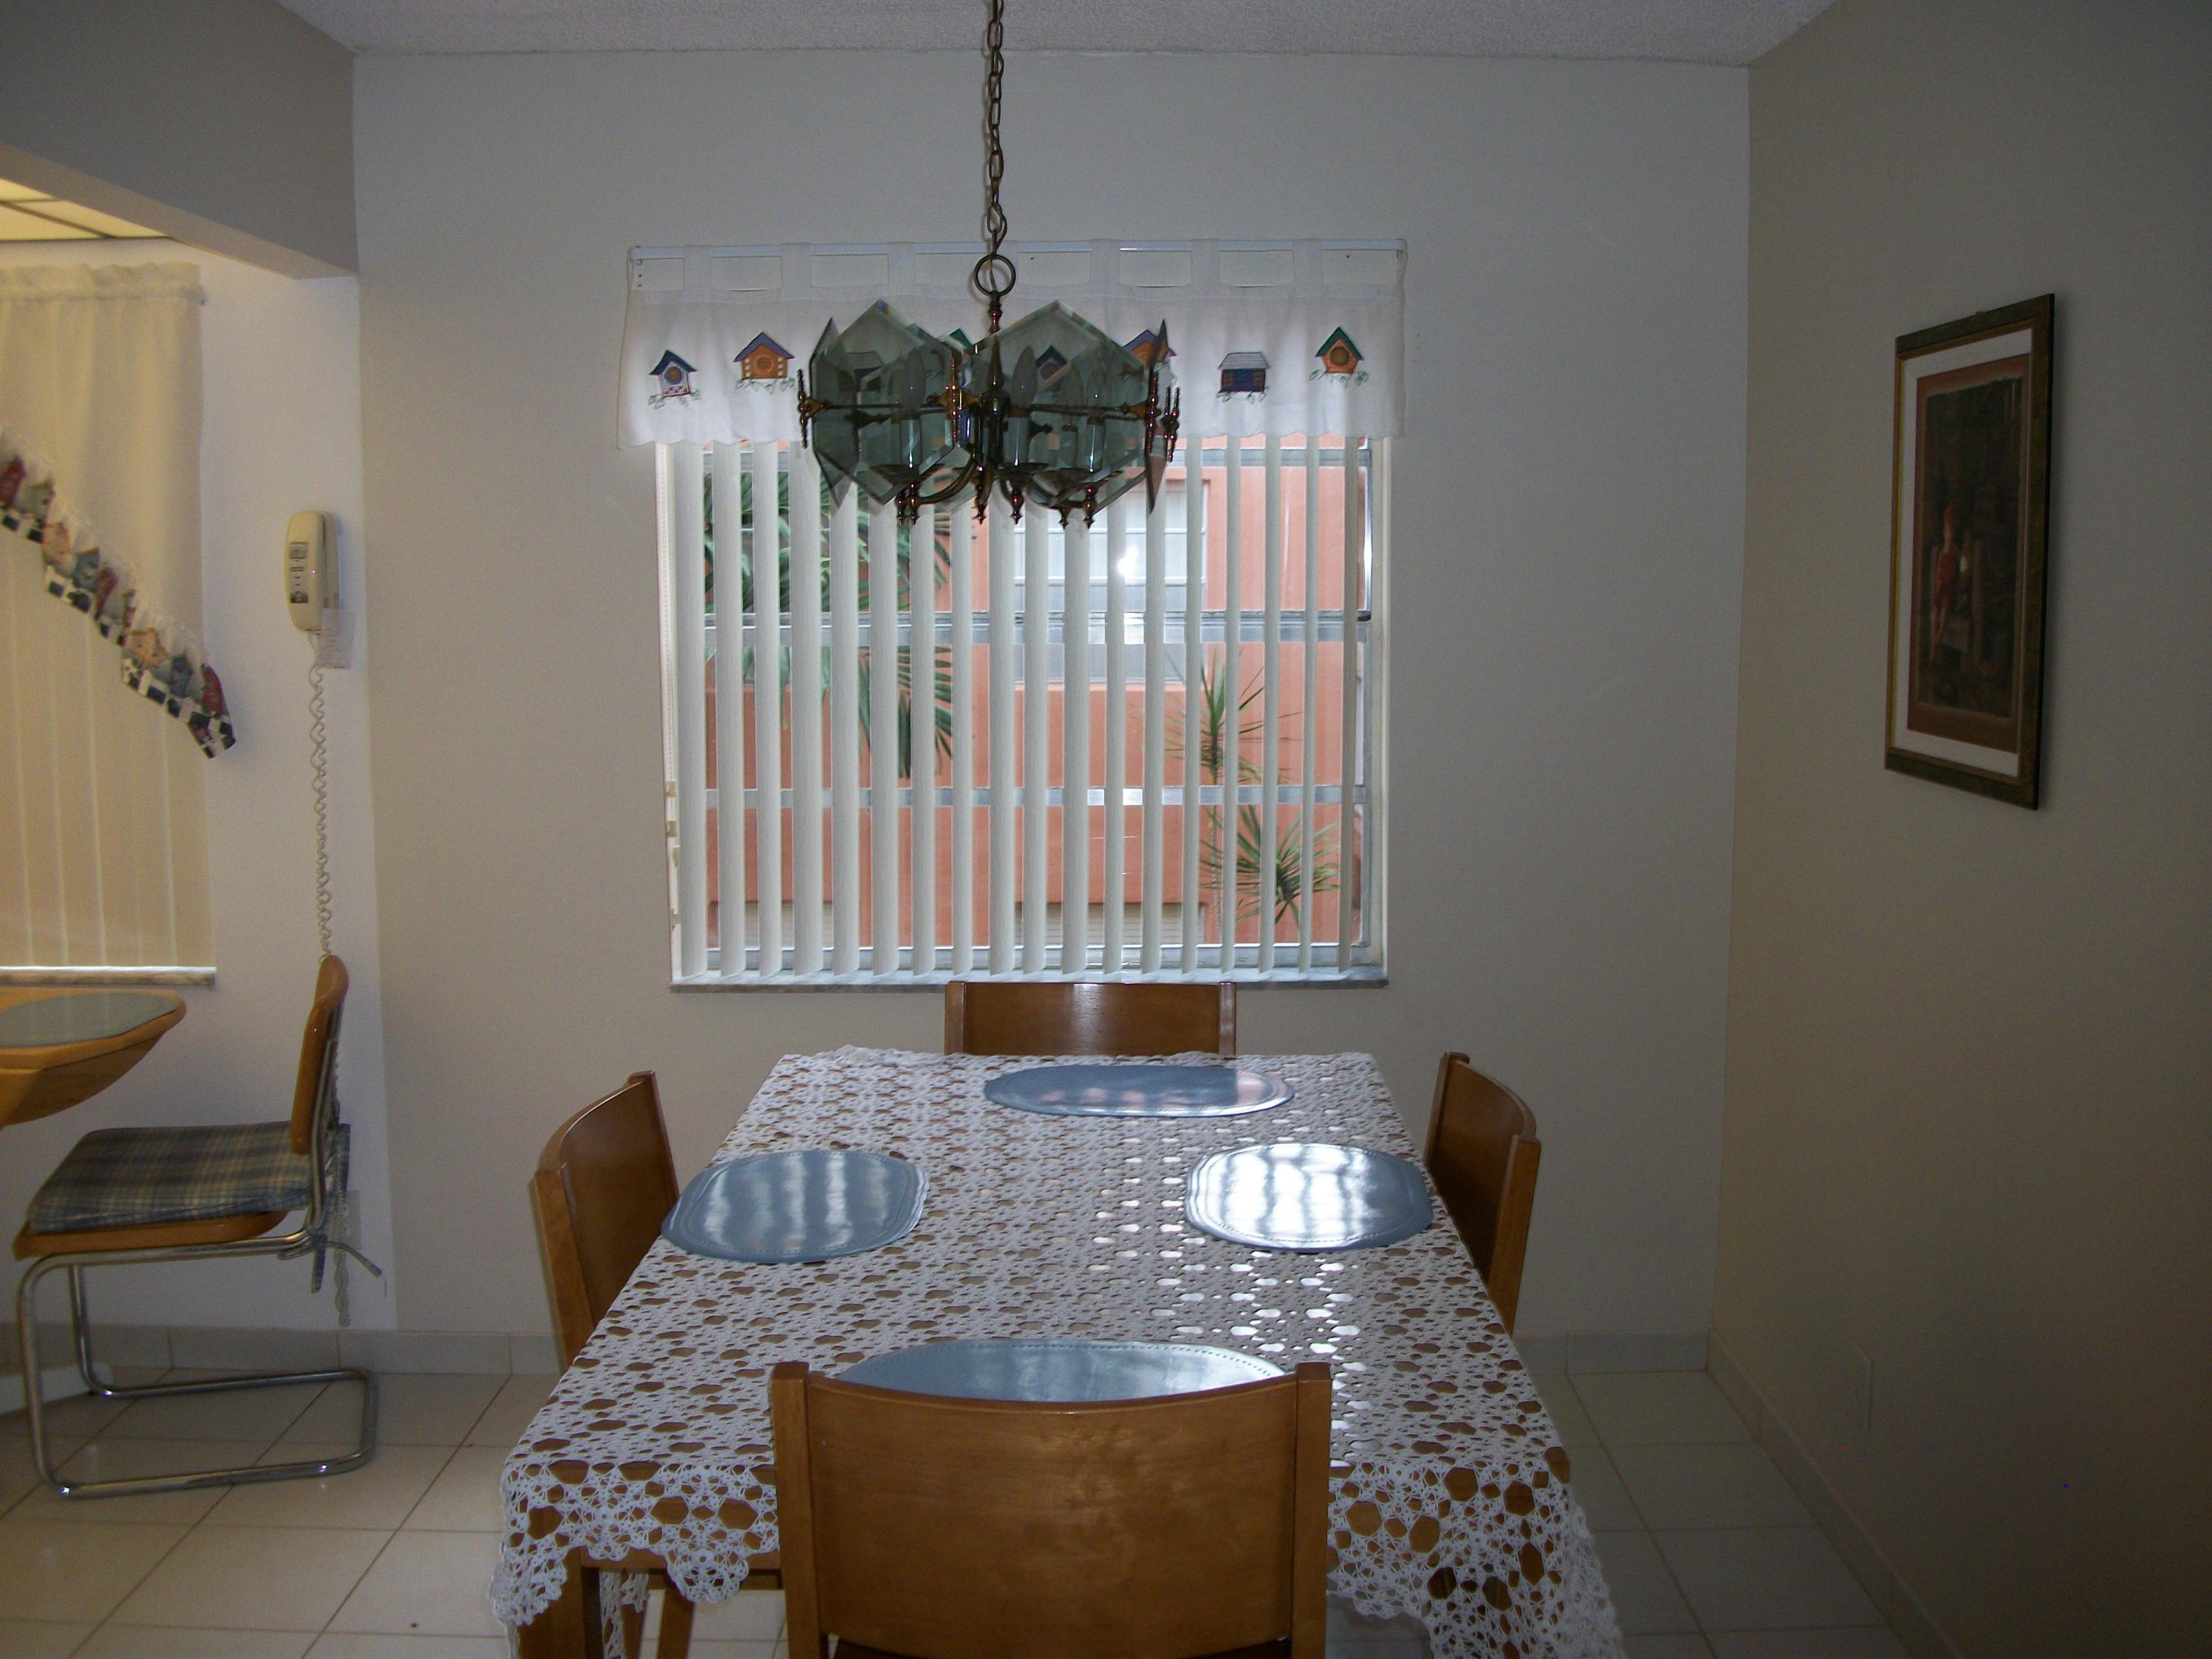 Home for sale in kings point normandy a thru u condos Delray Beach Florida